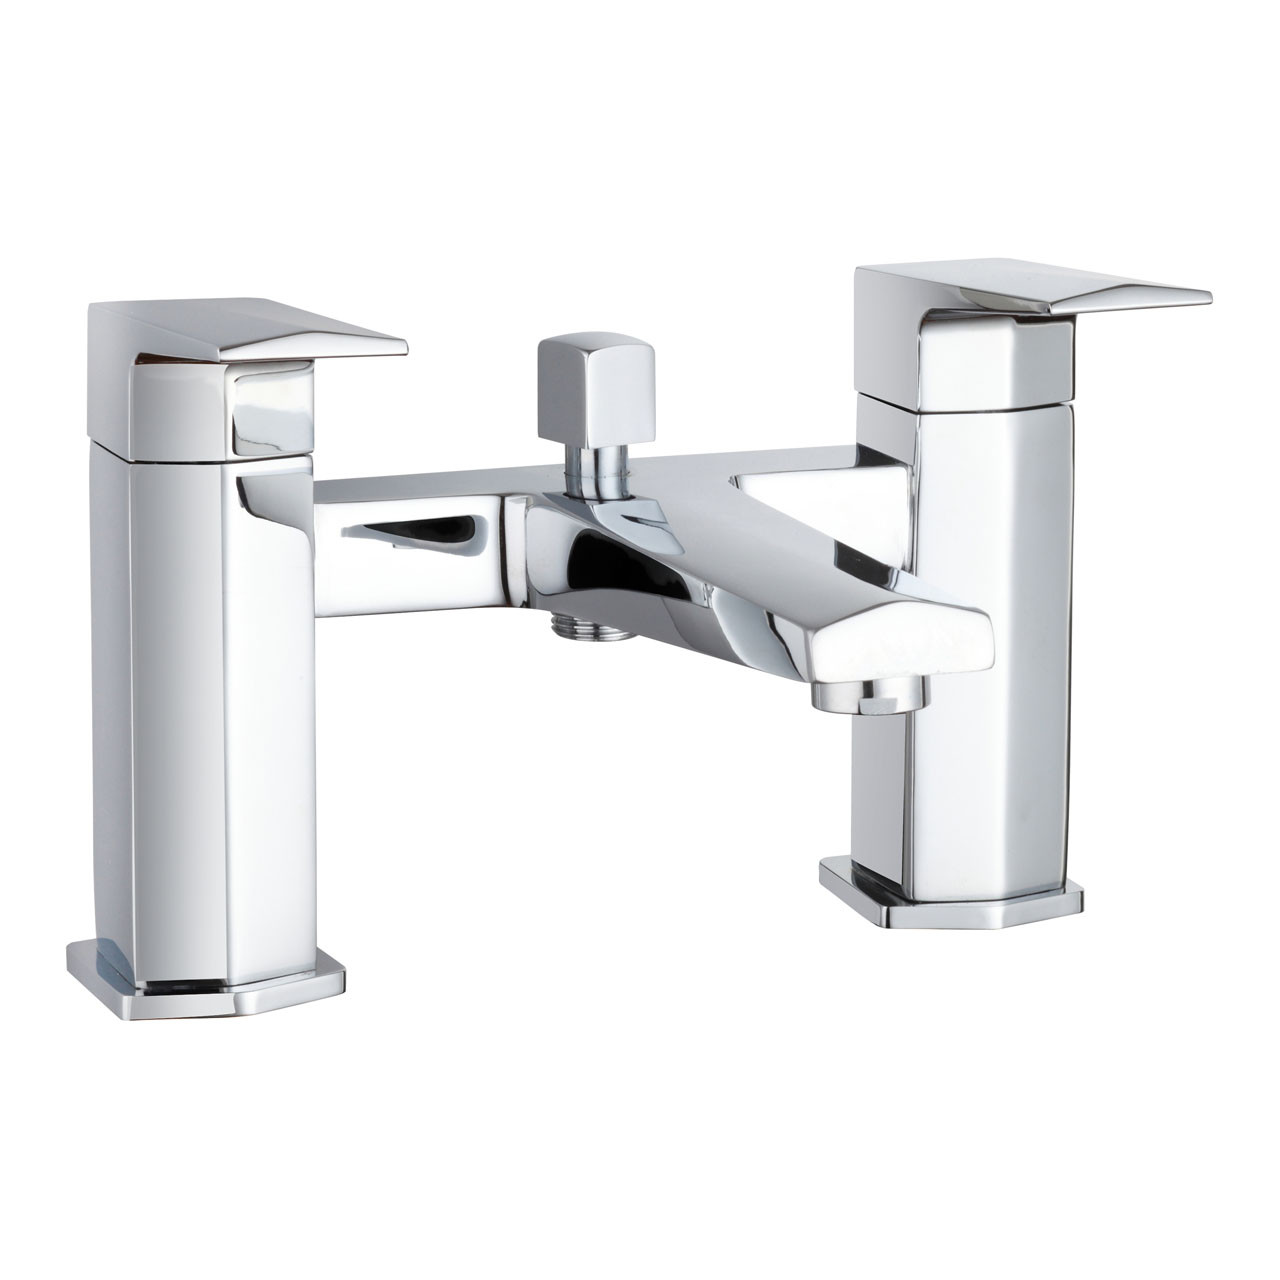 Nuie Hardy Bath and Shower Mixer Tap - HDY304